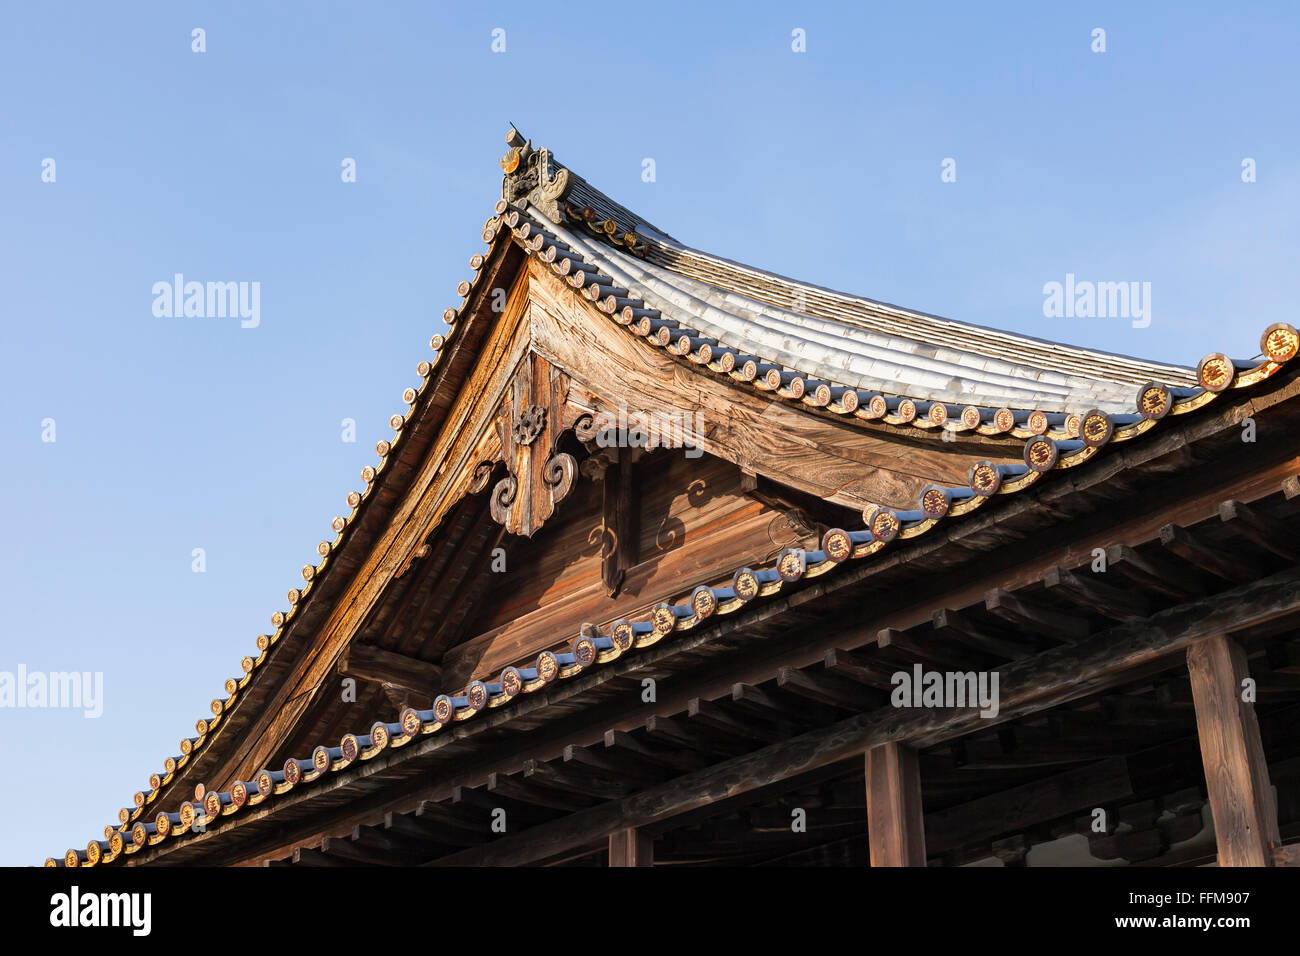 Japanisches Dach roof tiles japanese castle stockfotos roof tiles japanese